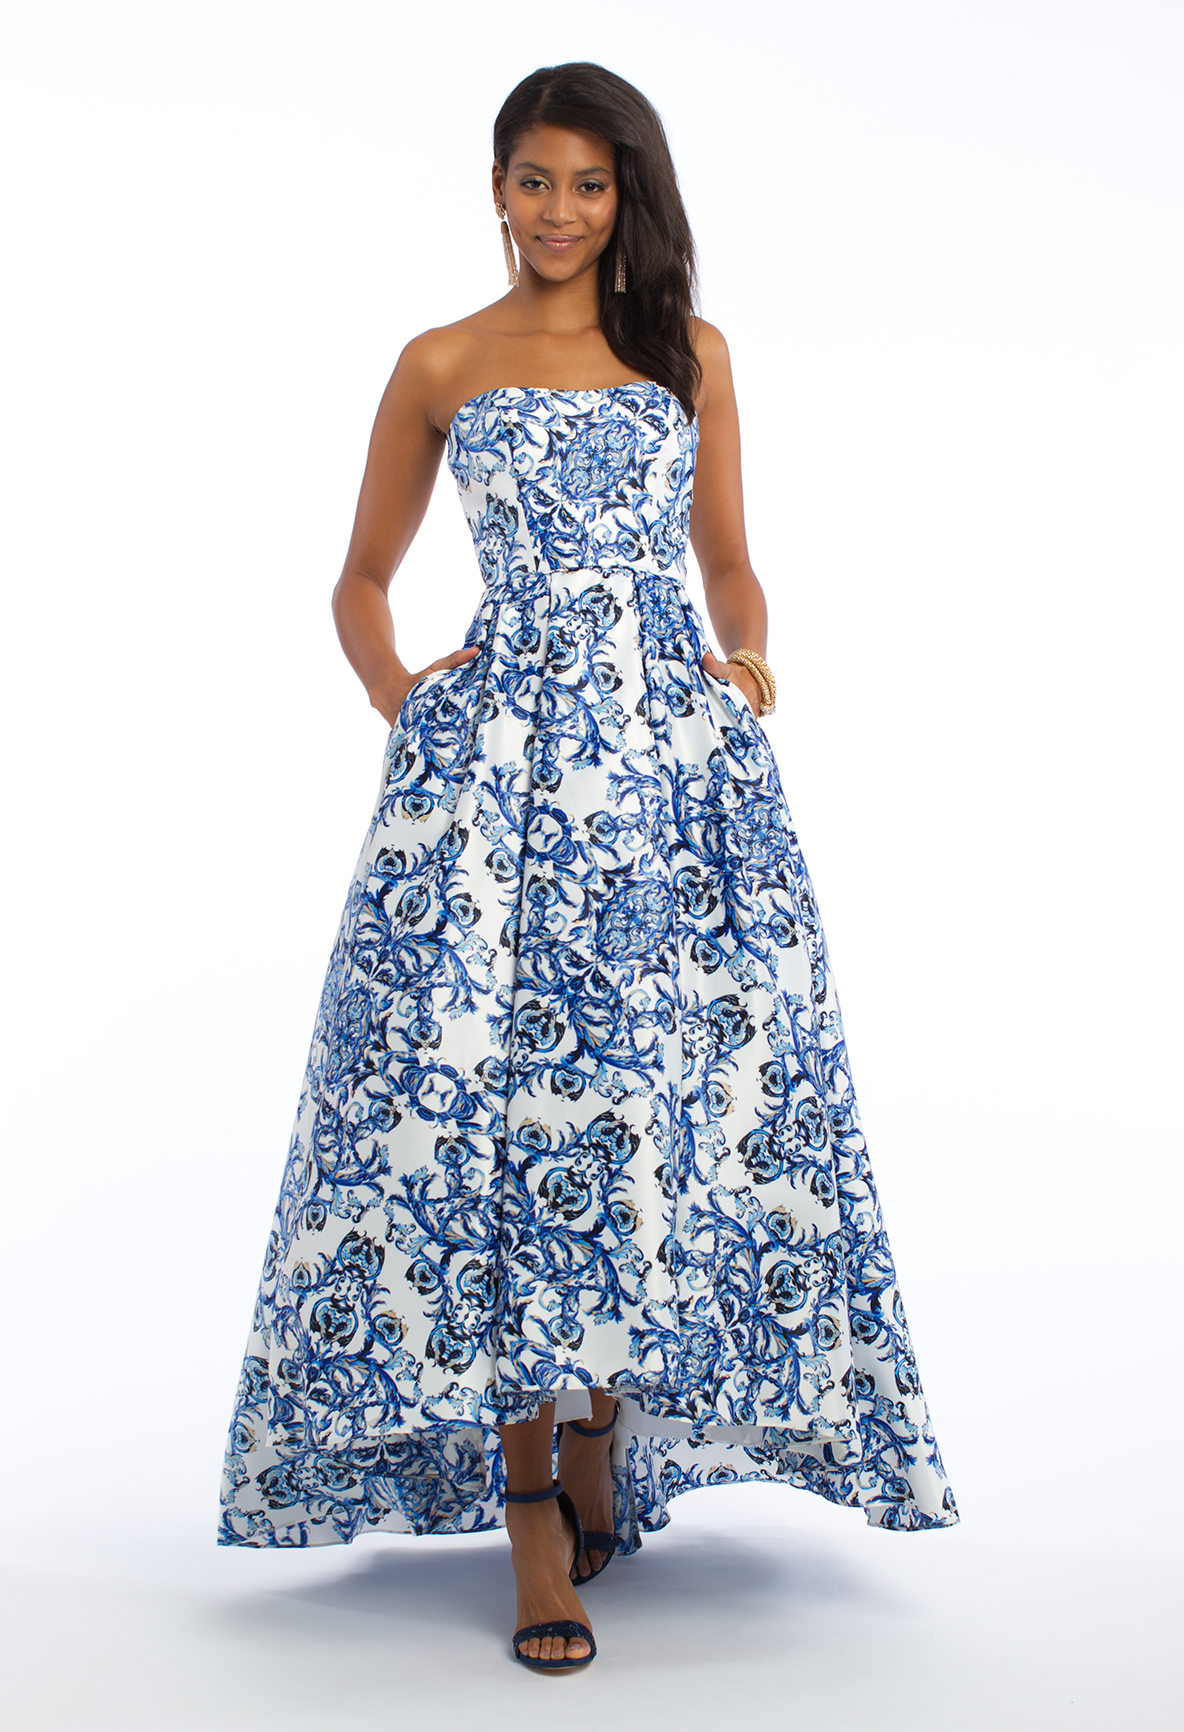 Float on by in this aline prom dress the strapless neckline